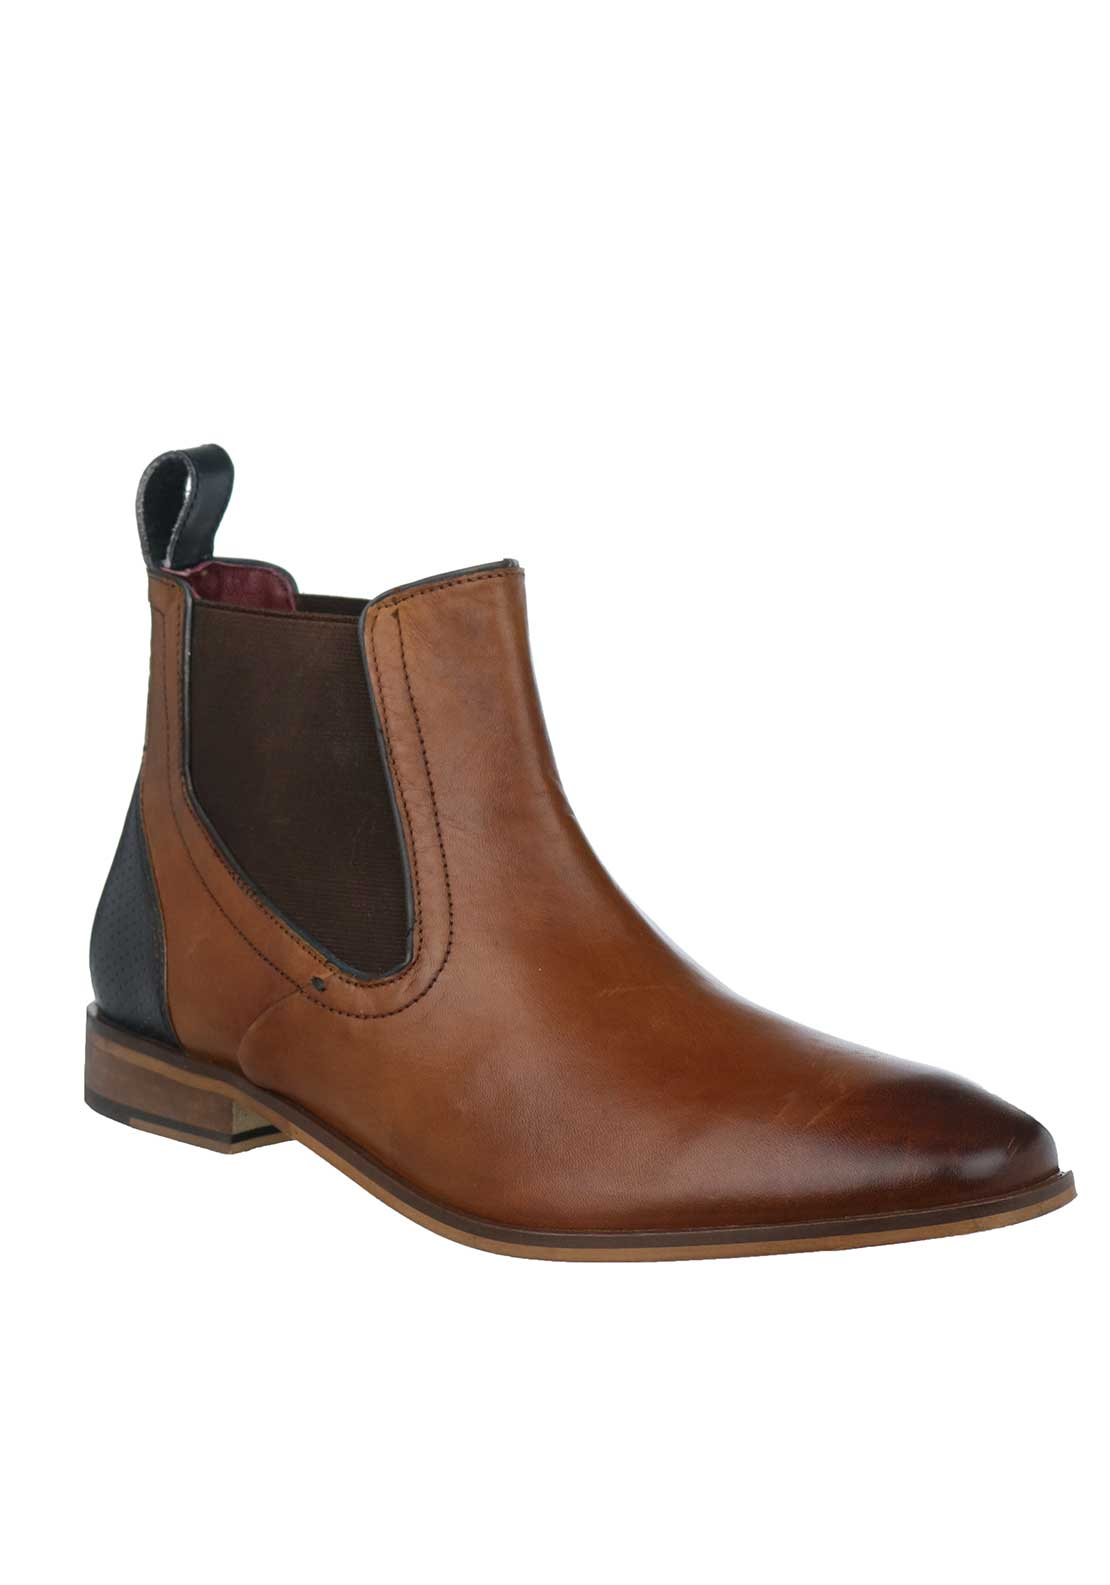 Paul O'Donnell Phoenix Leather Boot, Tan